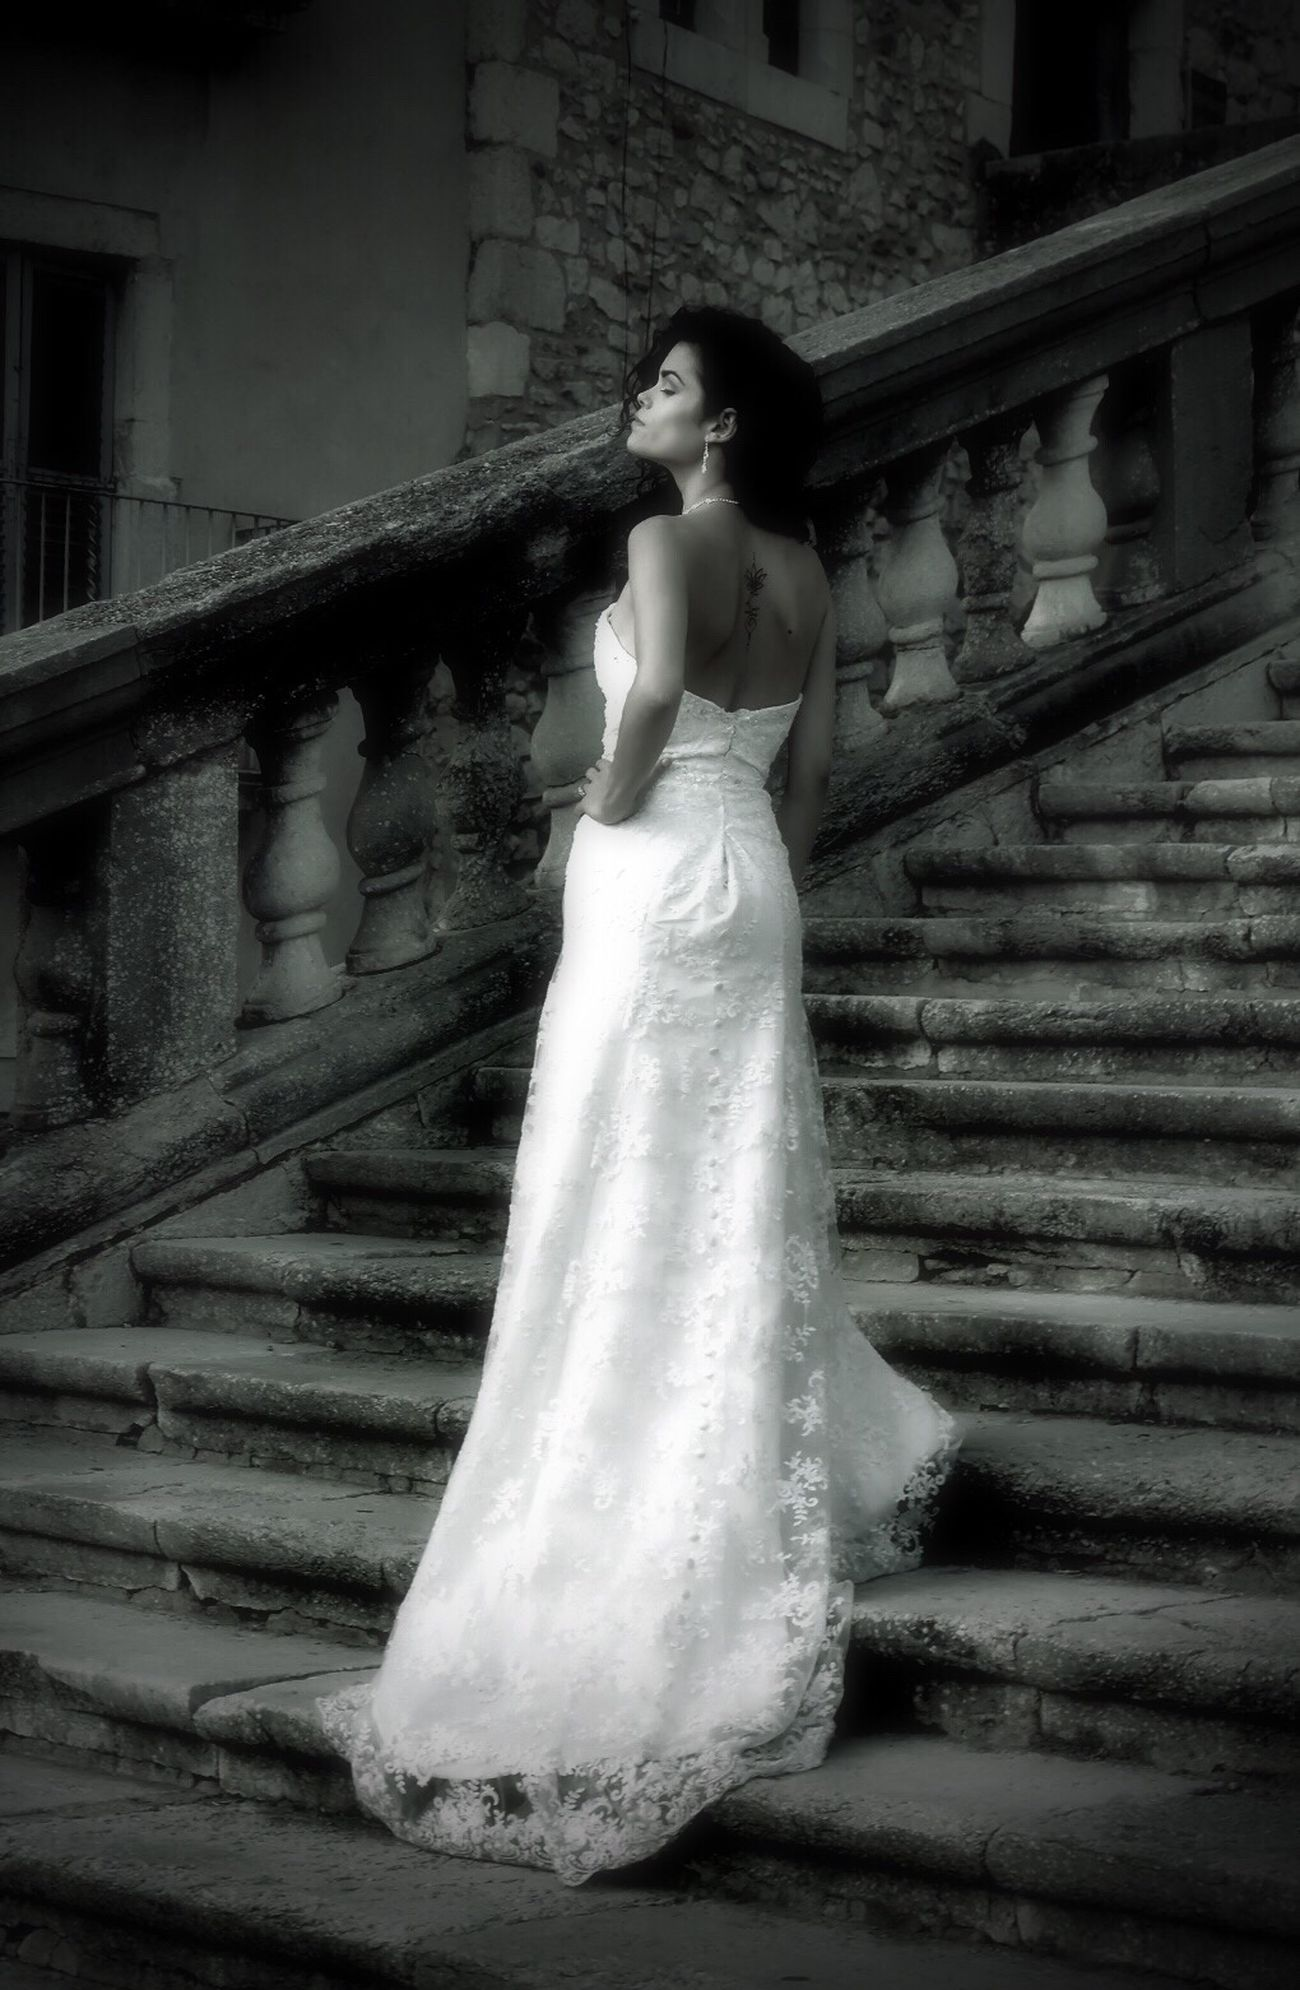 Steps Staircase Full Length Steps And Staircases Architecture Railing Young Adult Built Structure Real People One Person Beautiful Woman Young Women Wedding Dress Lifestyles Bride Low Angle View Women Wedding Building Exterior Happiness ByChanceClick Model Fujifilm Blackandwhite